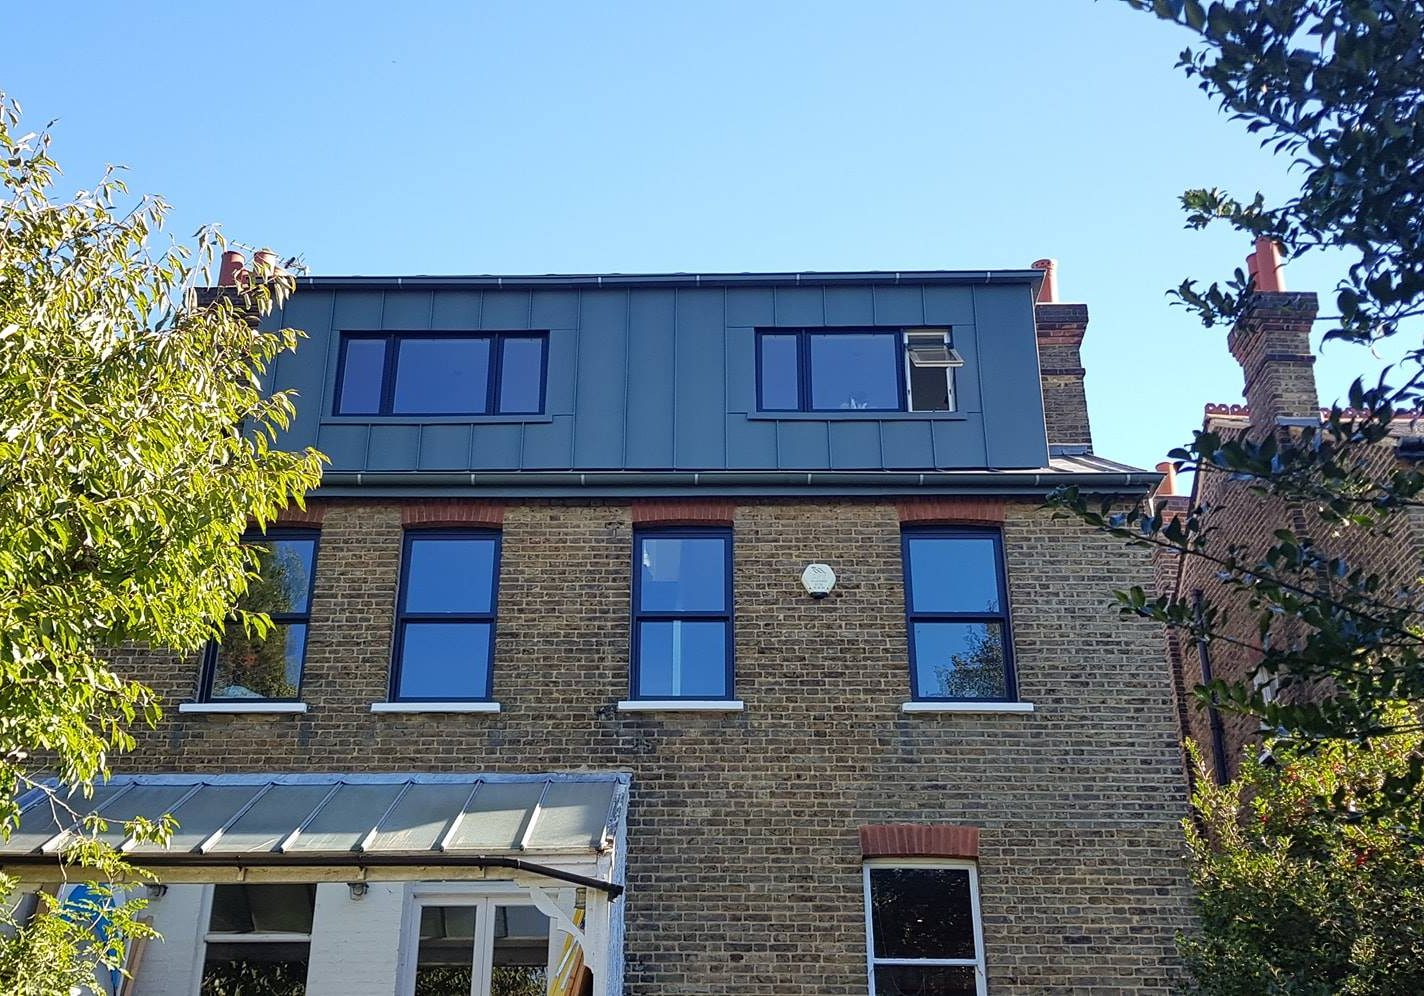 Zinc Roofing London